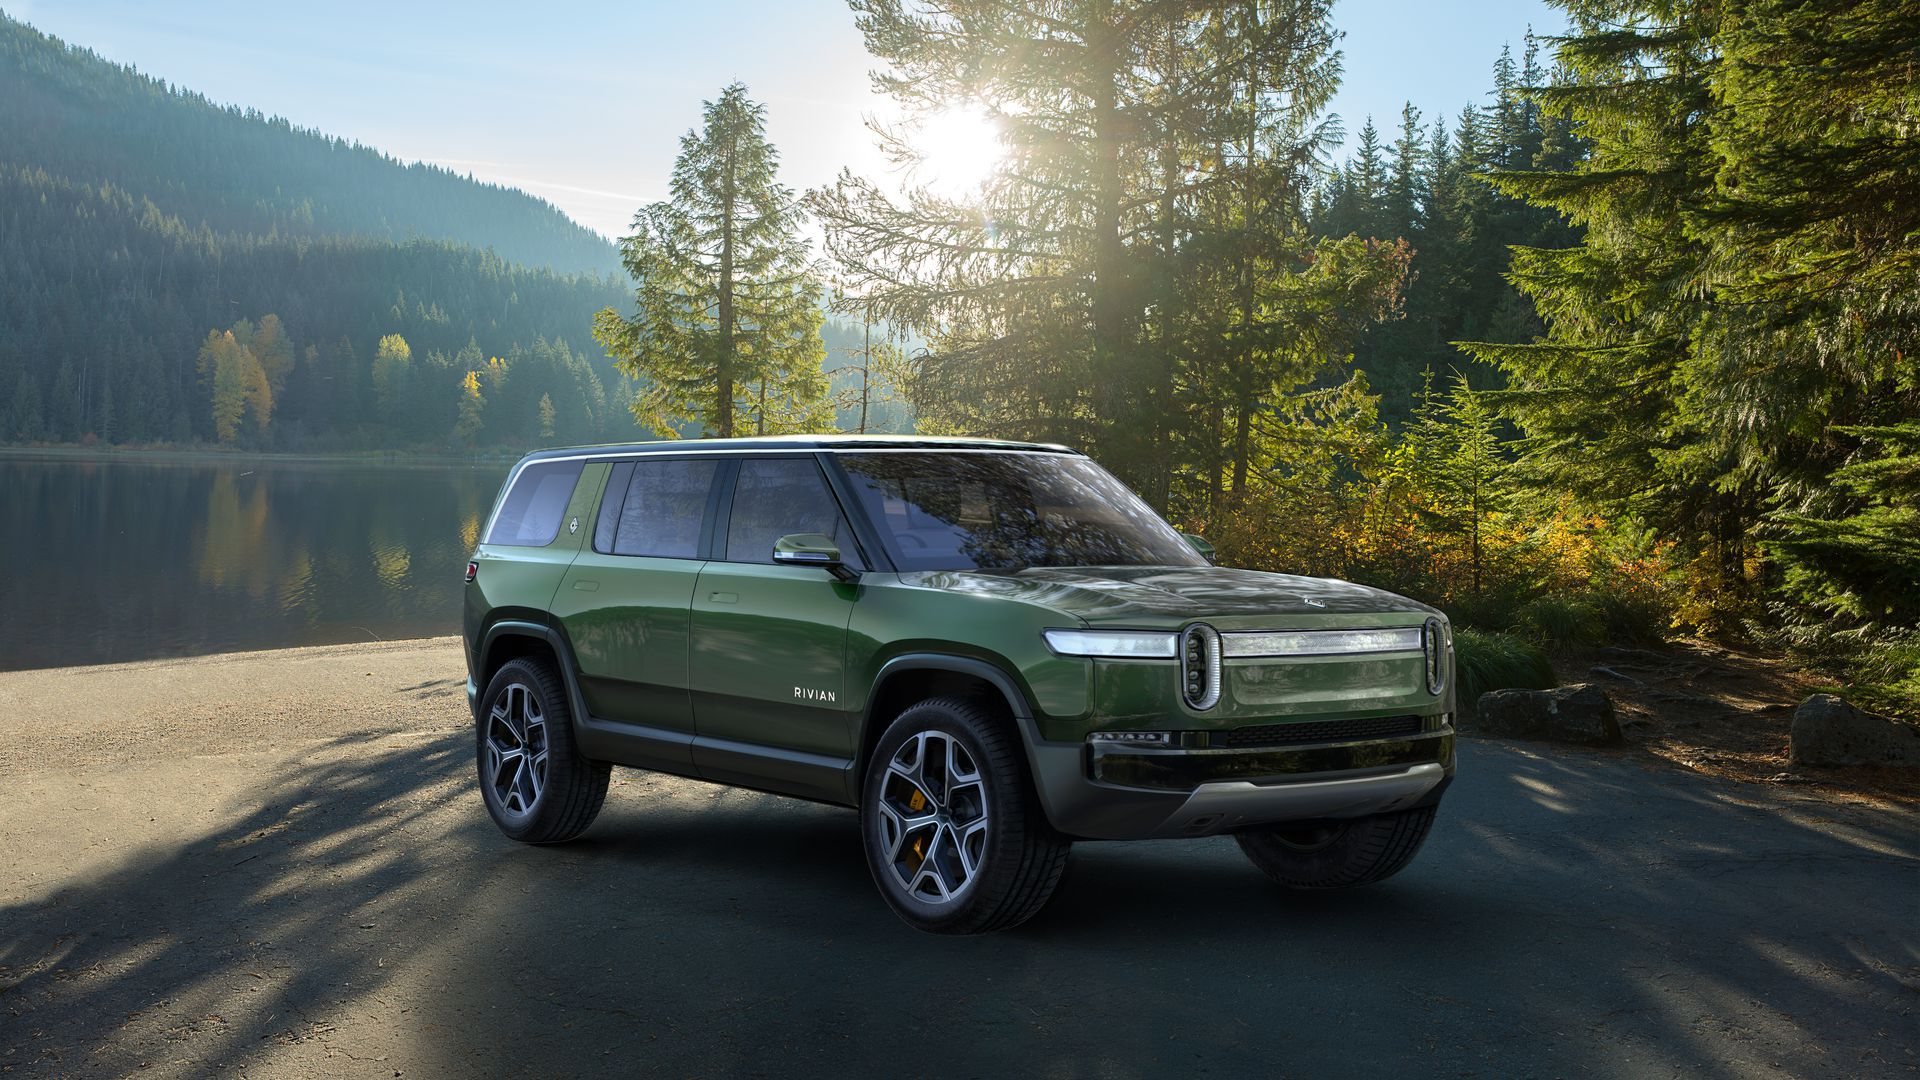 Rivian R1S battery-powered SUV for off-roading adventurers